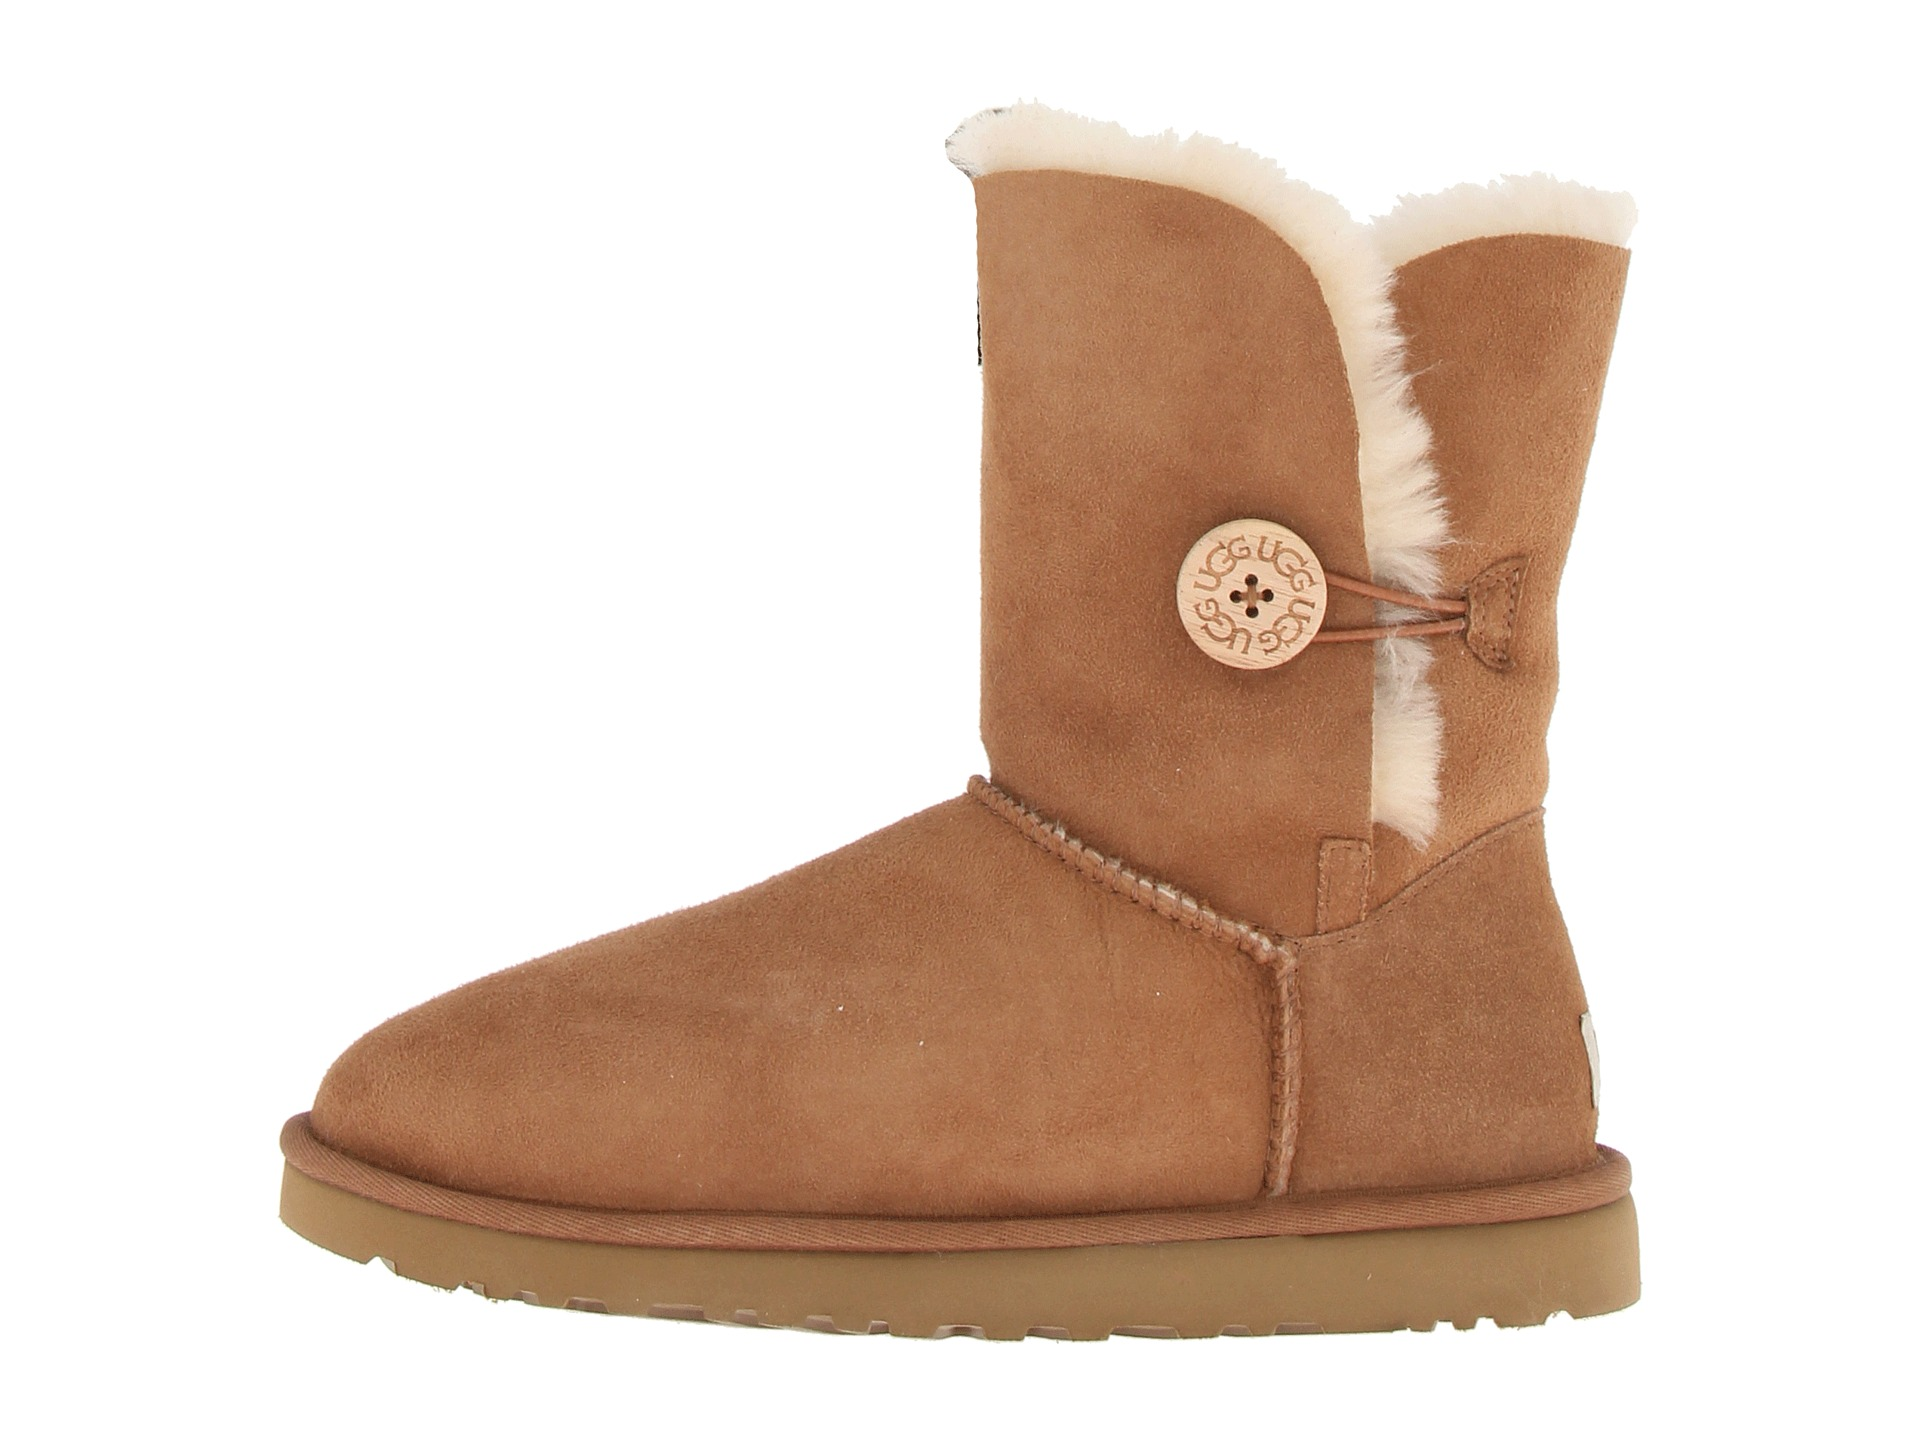 Ugg's Bailey Button style